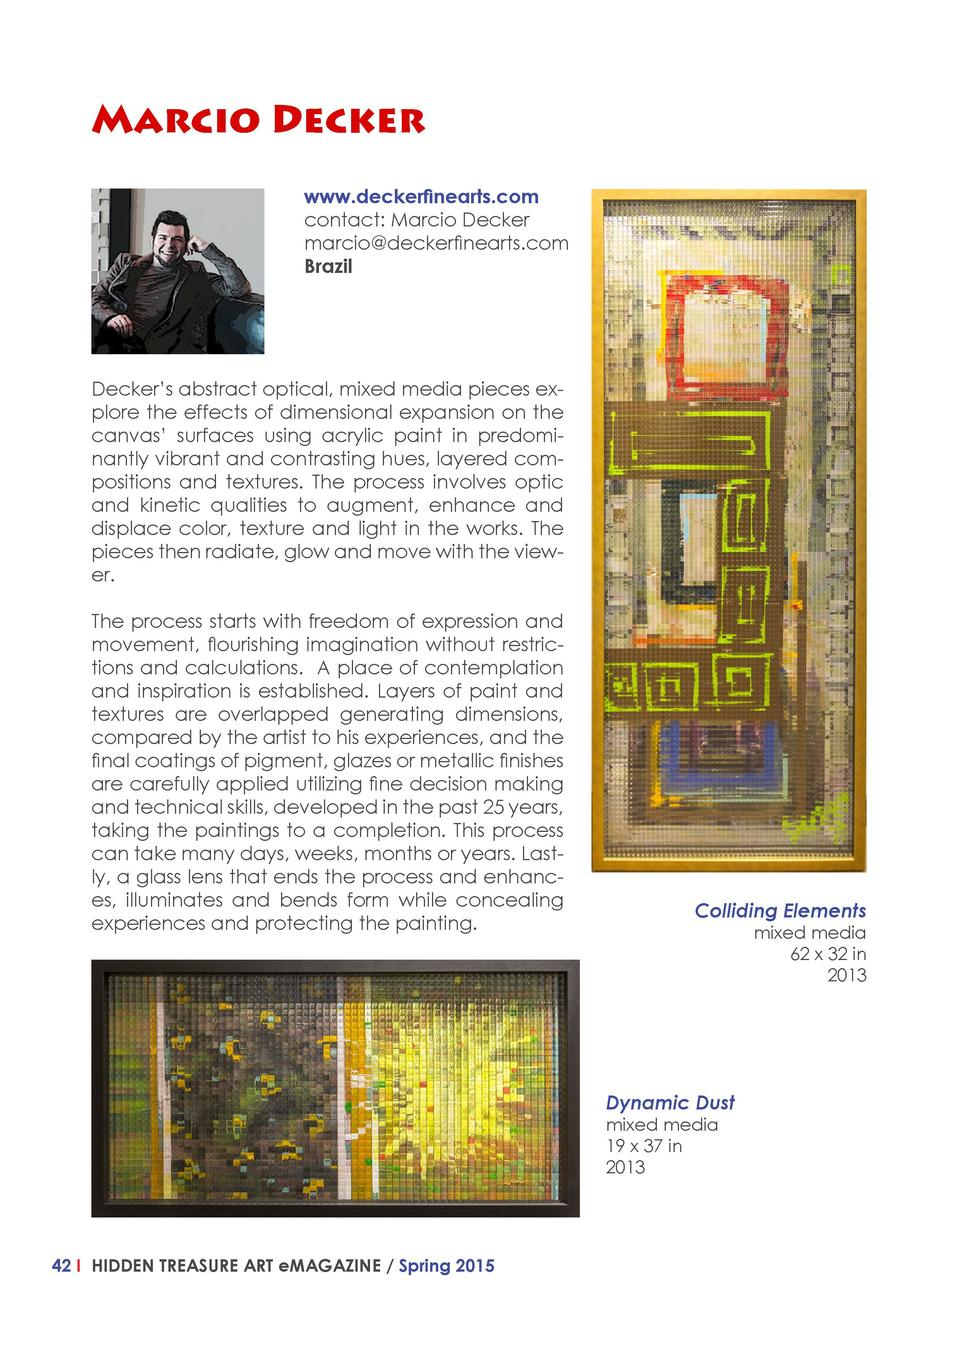 Marcio Decker www.deckerfinearts.com contact  Marcio Decker marcio deckerfinearts.com Brazil  Decker   s abstract optical,...